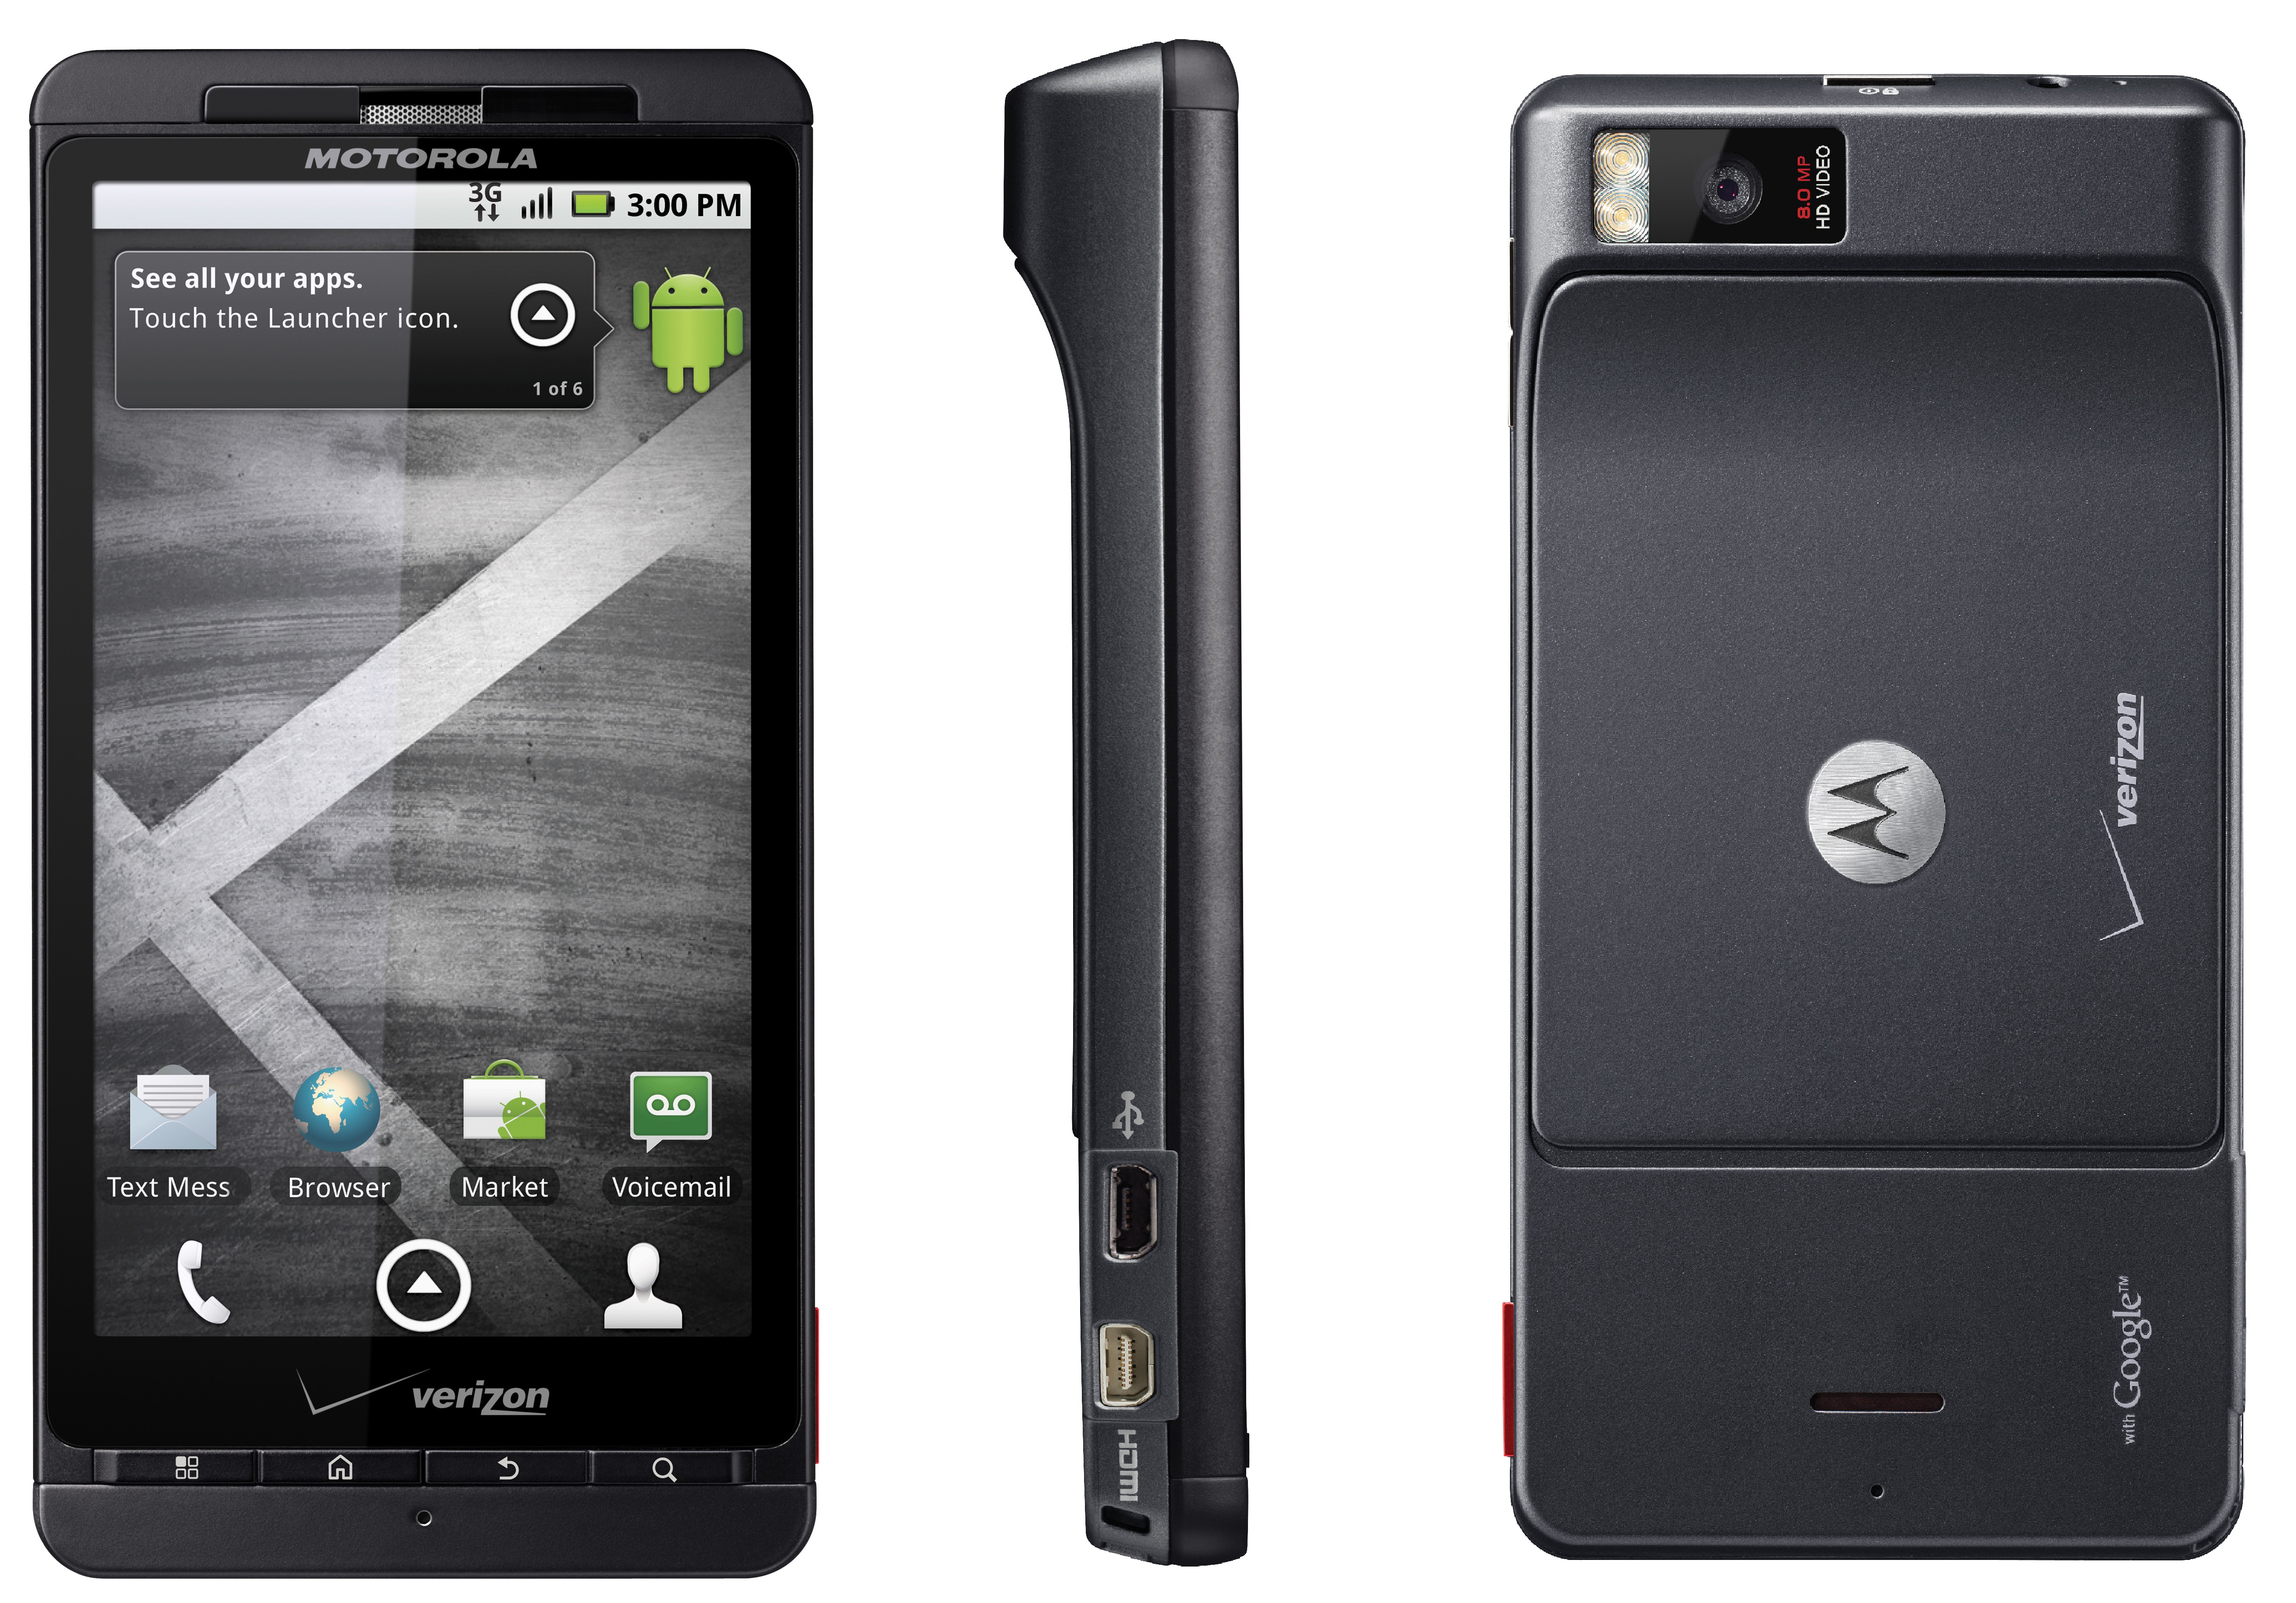 Motorola Droid X, Droid 2 and Droid 3